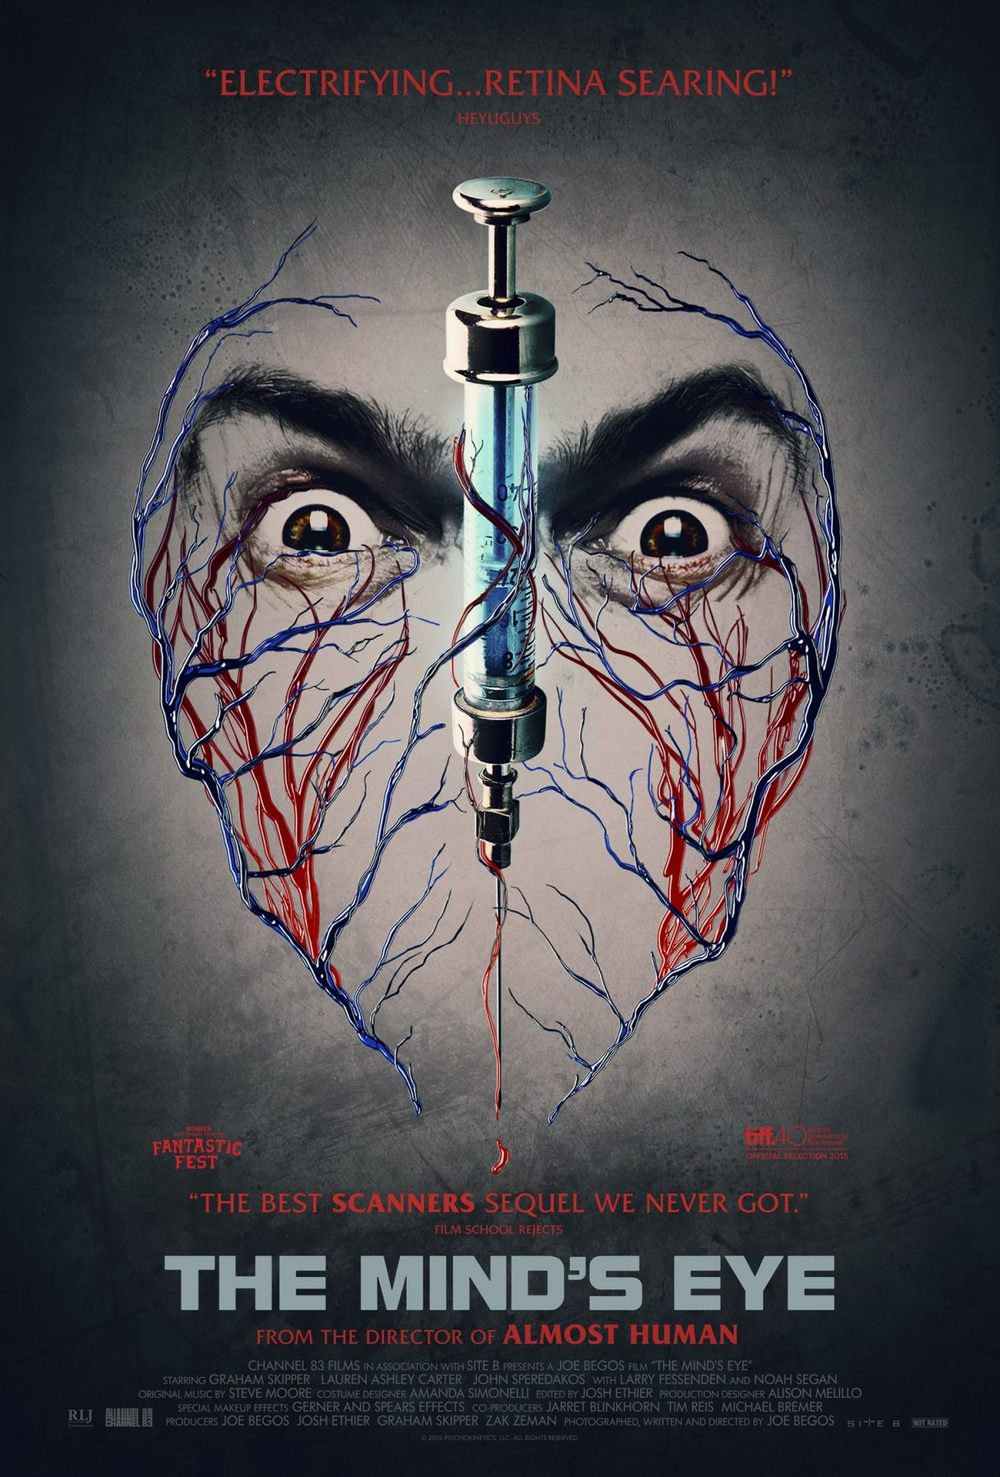 Whacked Out Trailer for the Psychokinetic Horror Film THE MIND'S EYE